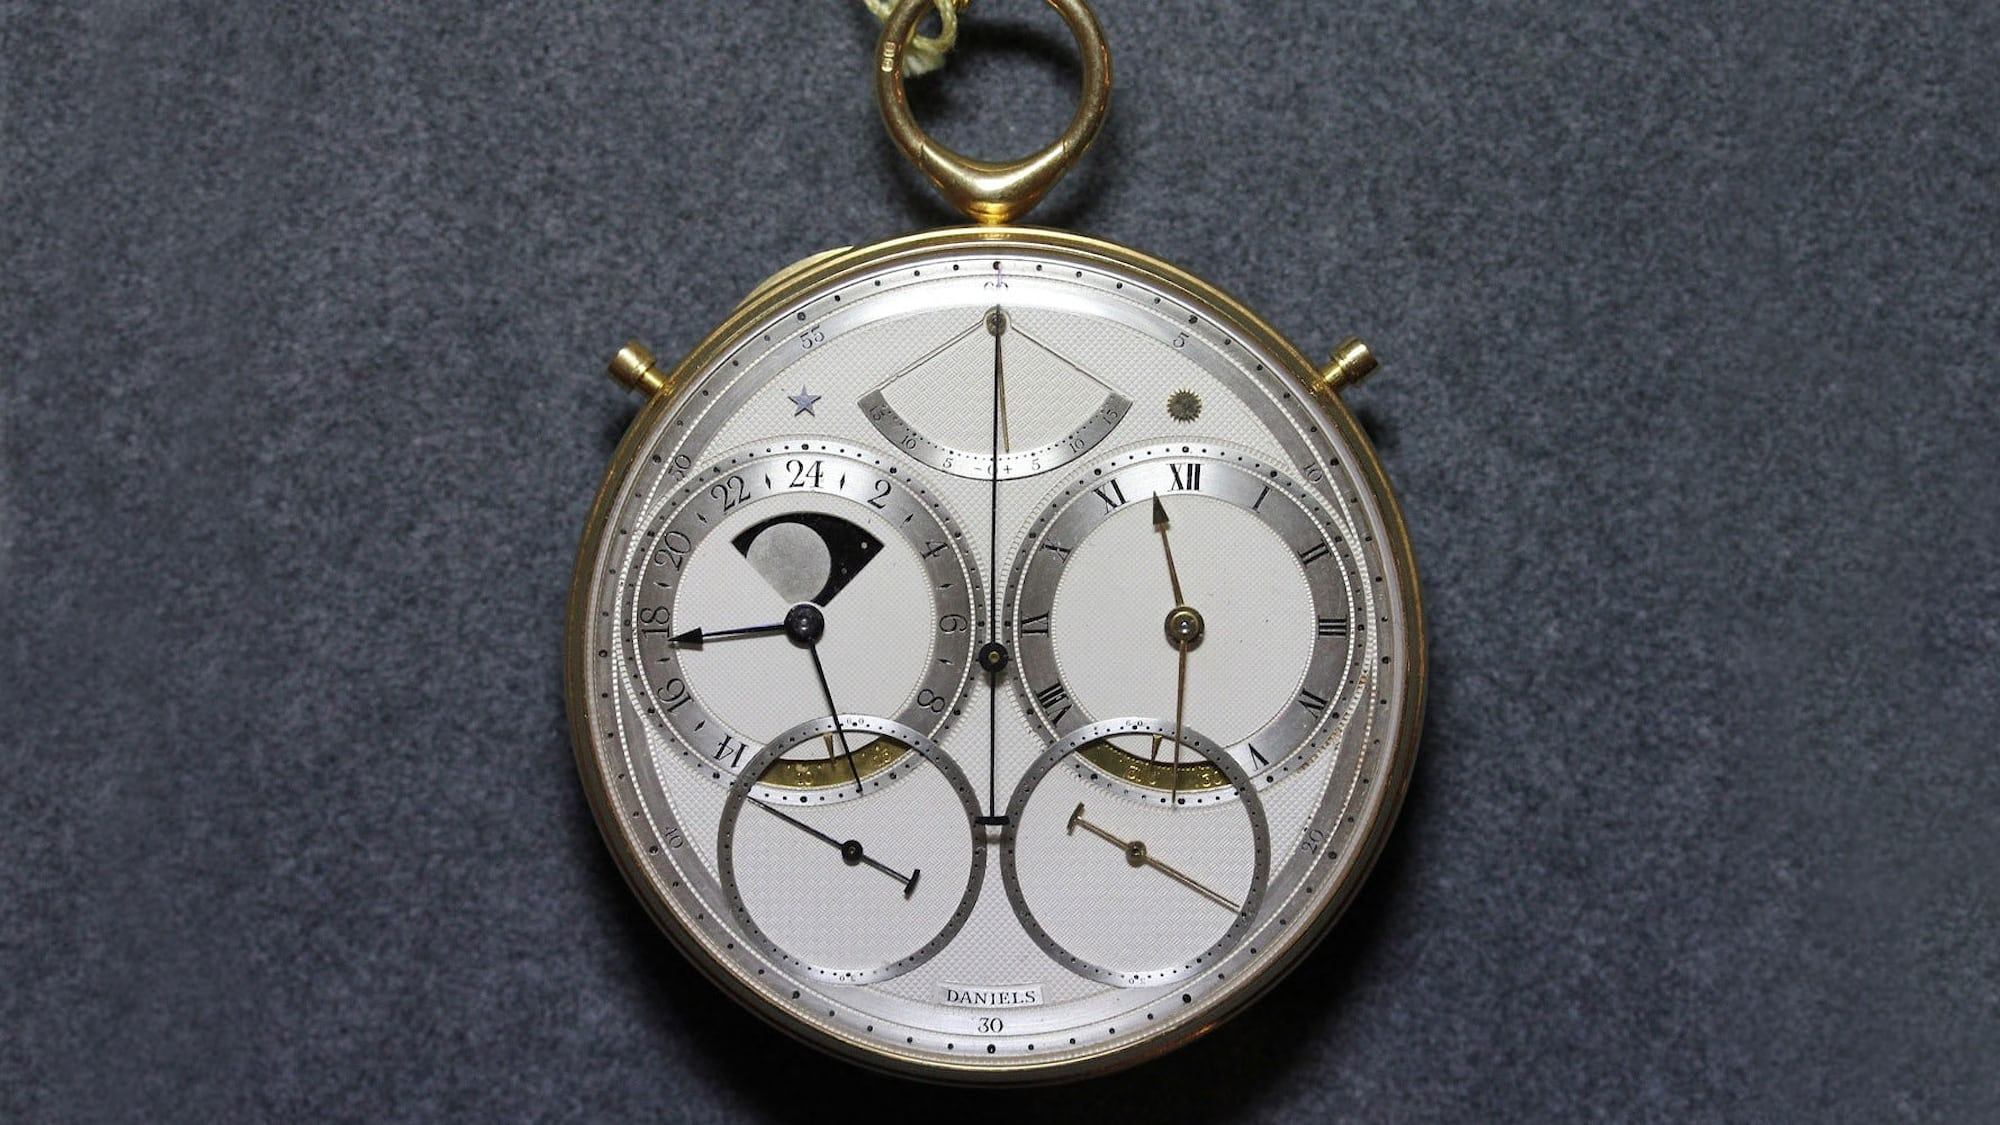 Cover1.jpg?ixlib=rails 1.1 breaking news: the george daniels space traveller pocket watch sells for $4.3 million at sotheby's london Breaking News: The George Daniels Space Traveller Pocket Watch Sells For $4.3 Million At Sotheby's London COVER1